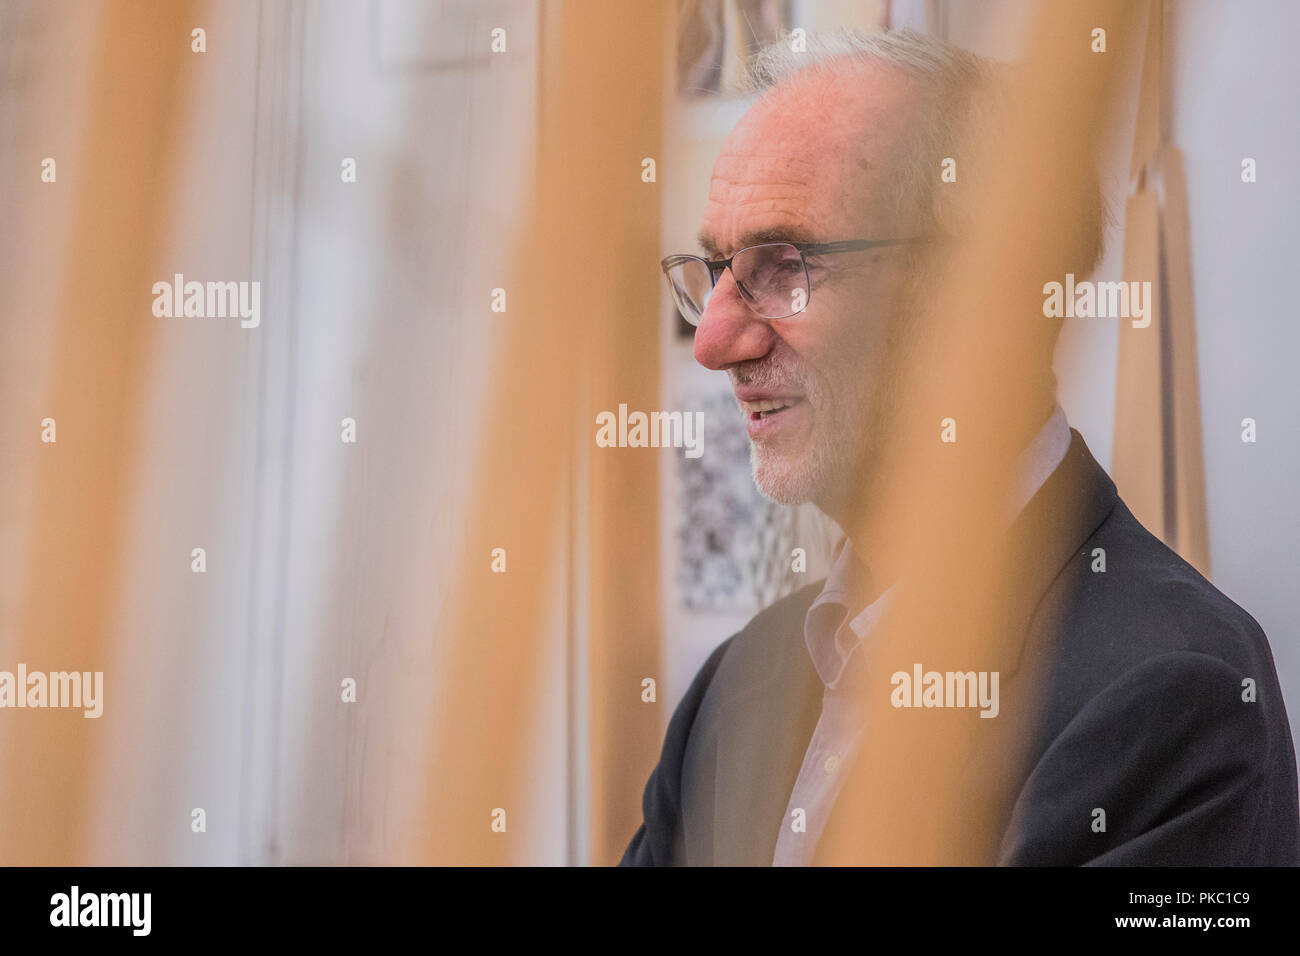 London, UK. 12th Sep, 2018. Renzo Piano behind a model fro the Jerome Seydoux Pathe Foundation - Renzo Piano: The Art of Making Buildings in the Gabrielle Jungels-Winkler Galleries of the Royal Academy of Arts. Piano is an architect and Honorary Royal Academicianand this is the first comprehensive survey of hiss career to be held in London since 1989 - forming part of the 250th anniversary of the Royal Academy. Credit: Guy Bell/Alamy Live News - Stock Image